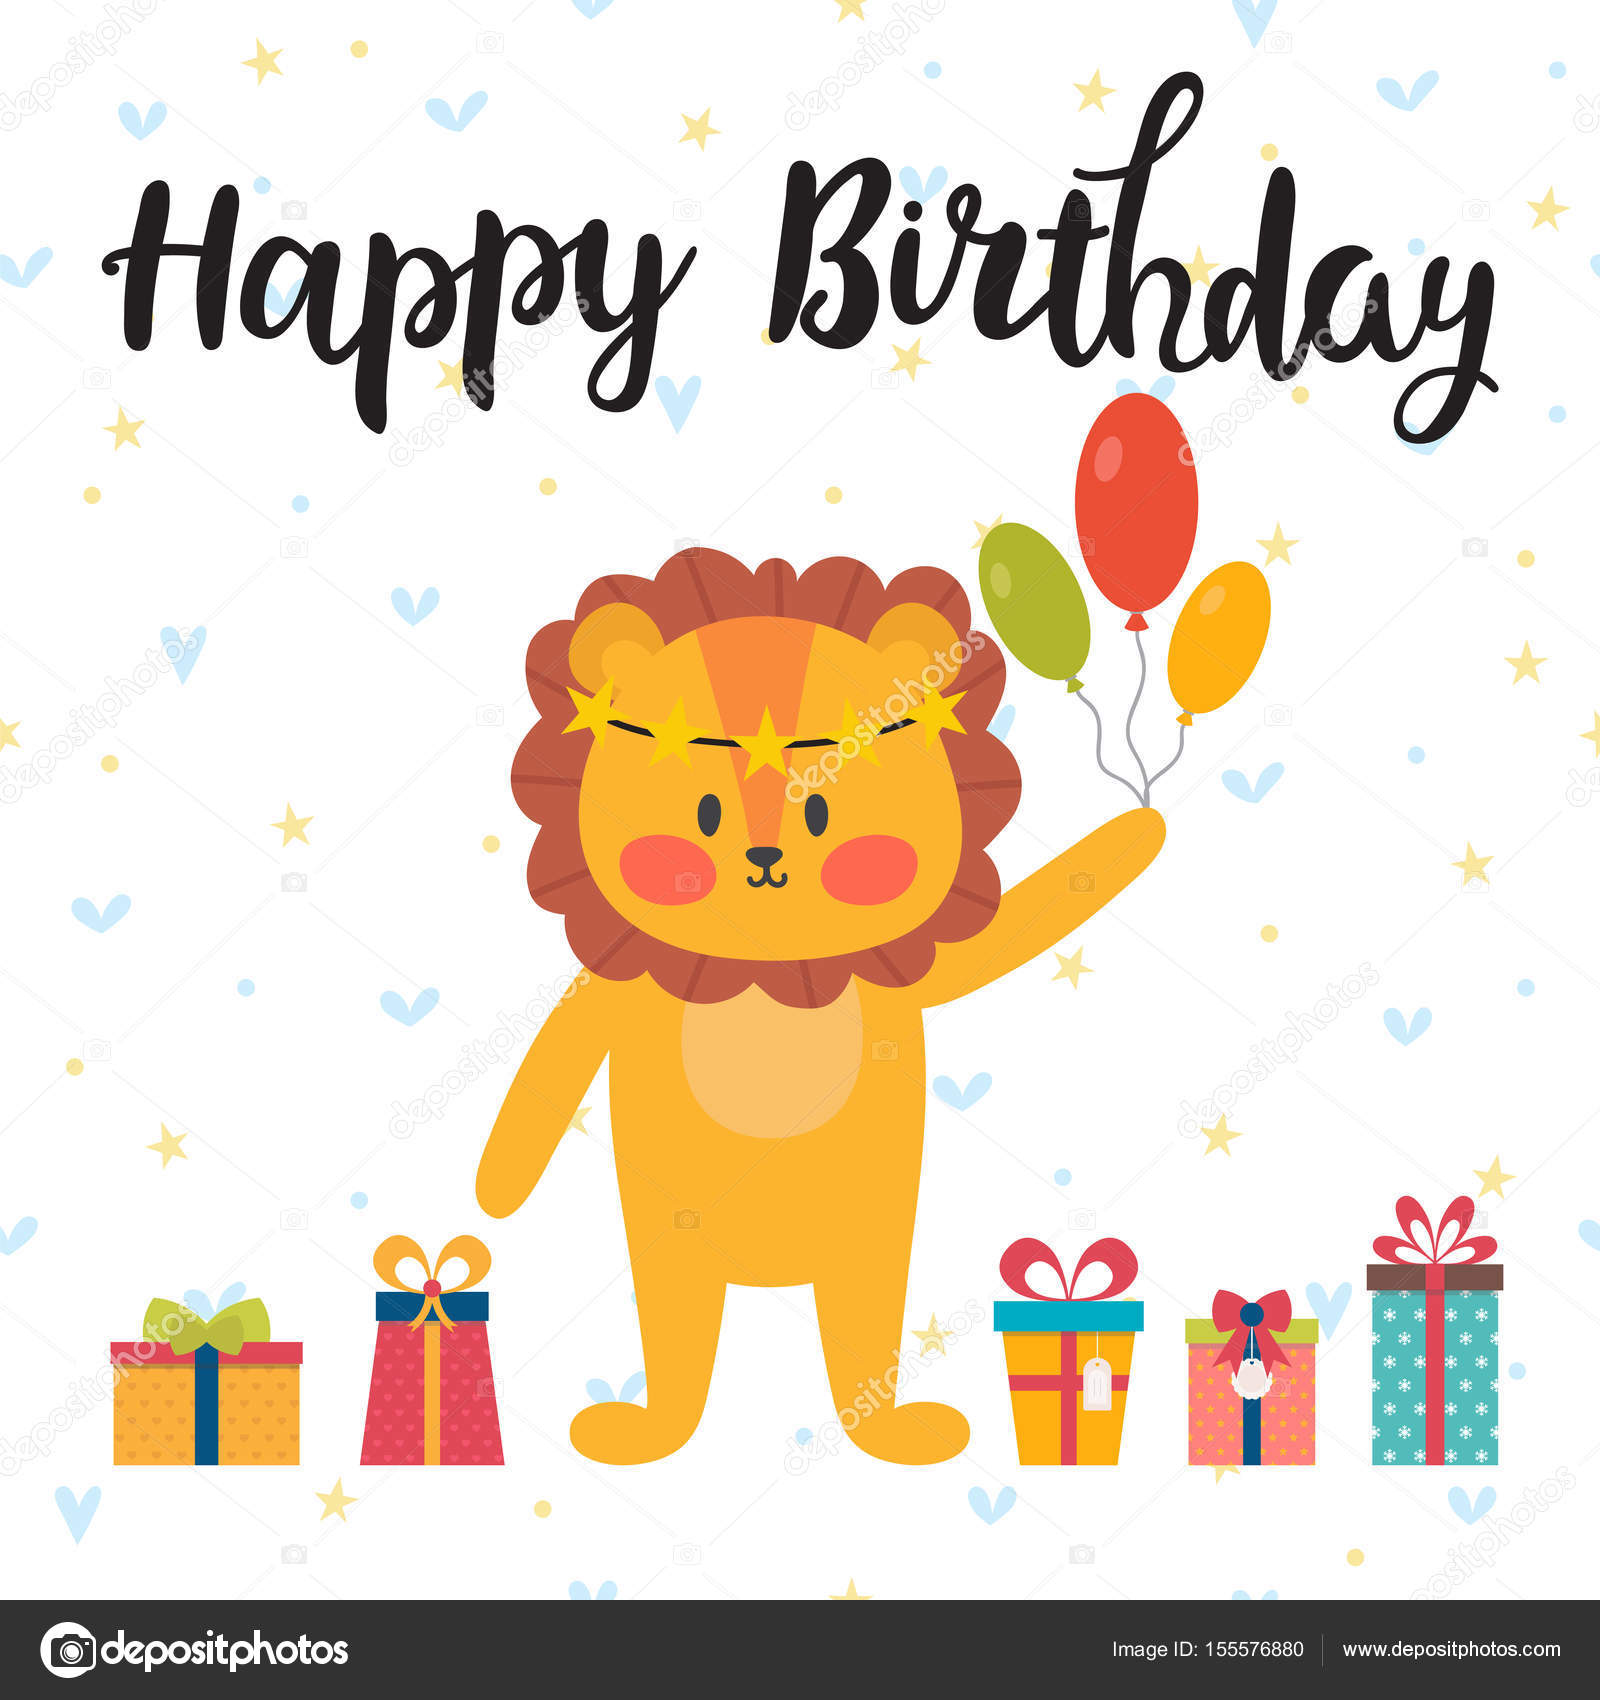 Happy birthday greeting card cute postcard with funny little lion happy birthday greeting card cute postcard with funny little lion stock vector kristyandbryce Image collections